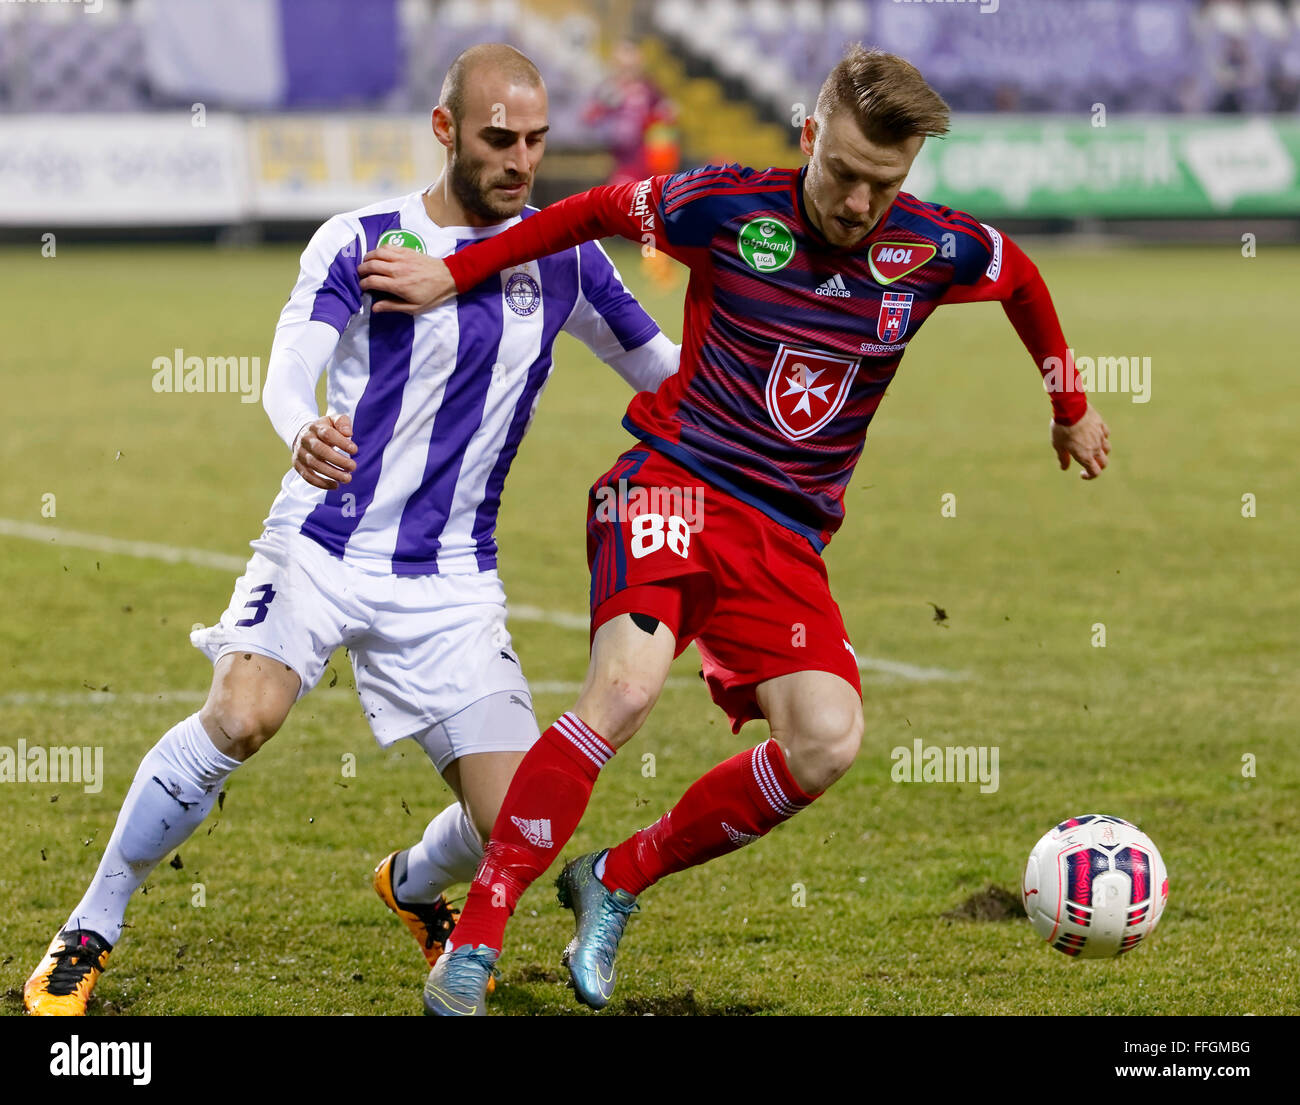 Budapest, Hungary. 13th Feb, 2016. Duel between Jonathan Heris of Ujpest (l) and Zsolt Haraszti of Videoton during - Stock Image